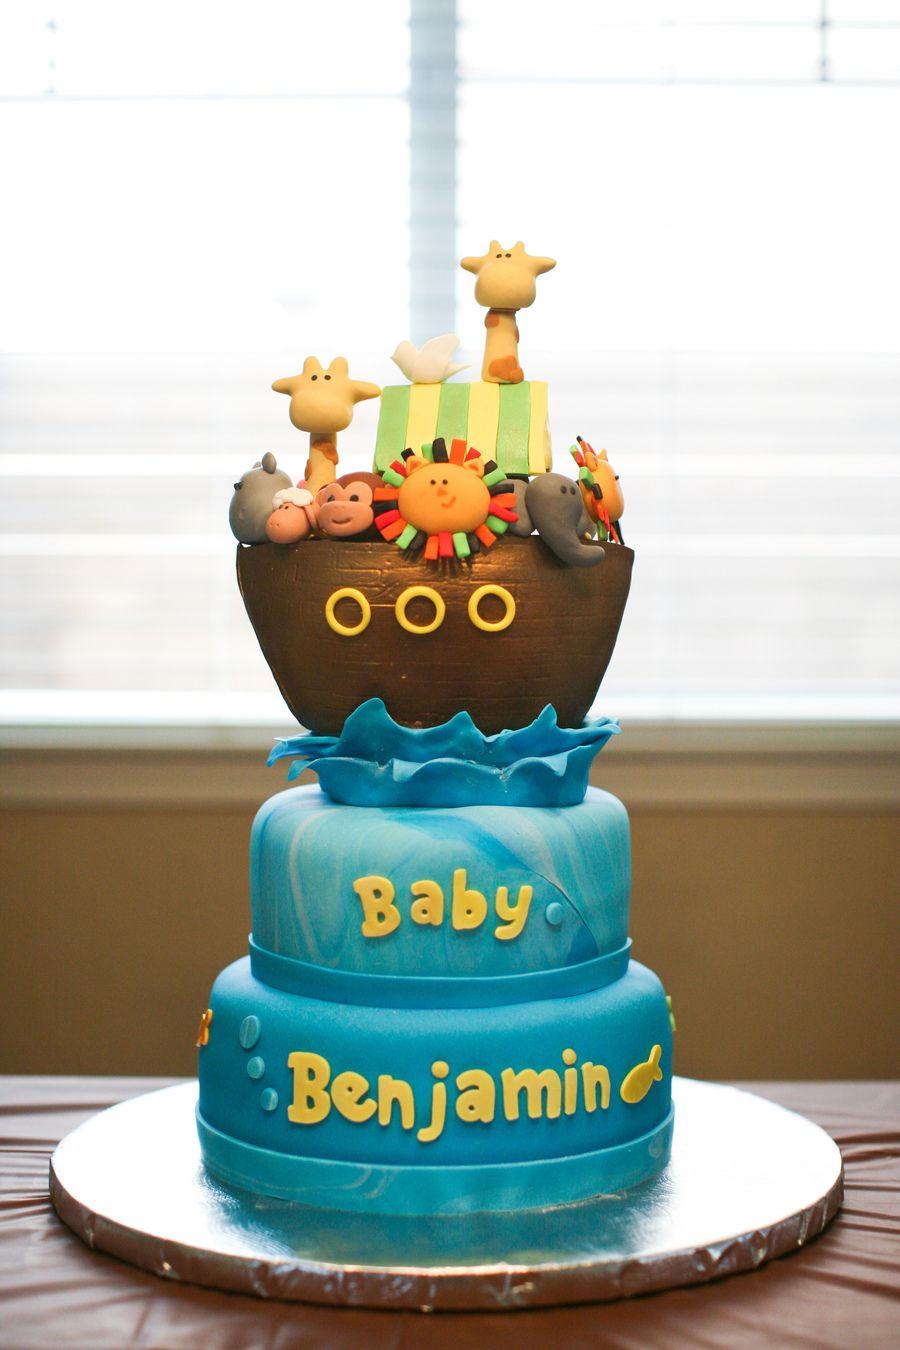 Ark Kuchen Noah S Ark Baby Shower Cake Babyshower Cake Made To Match The